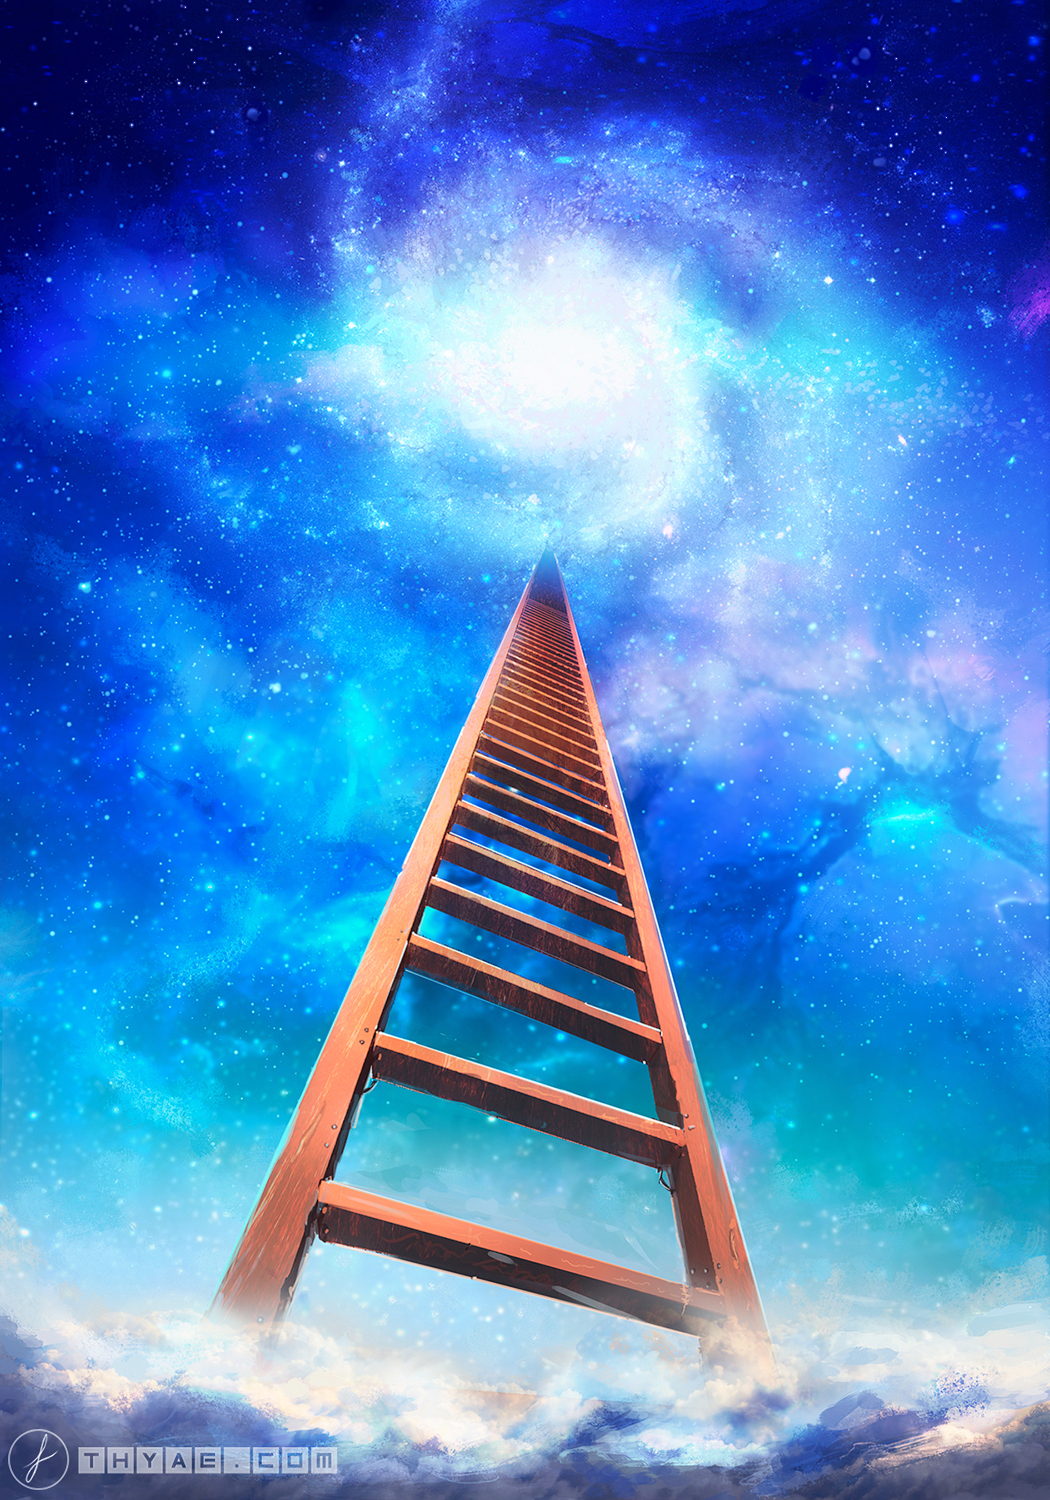 Illustration of a Stairway to the stars